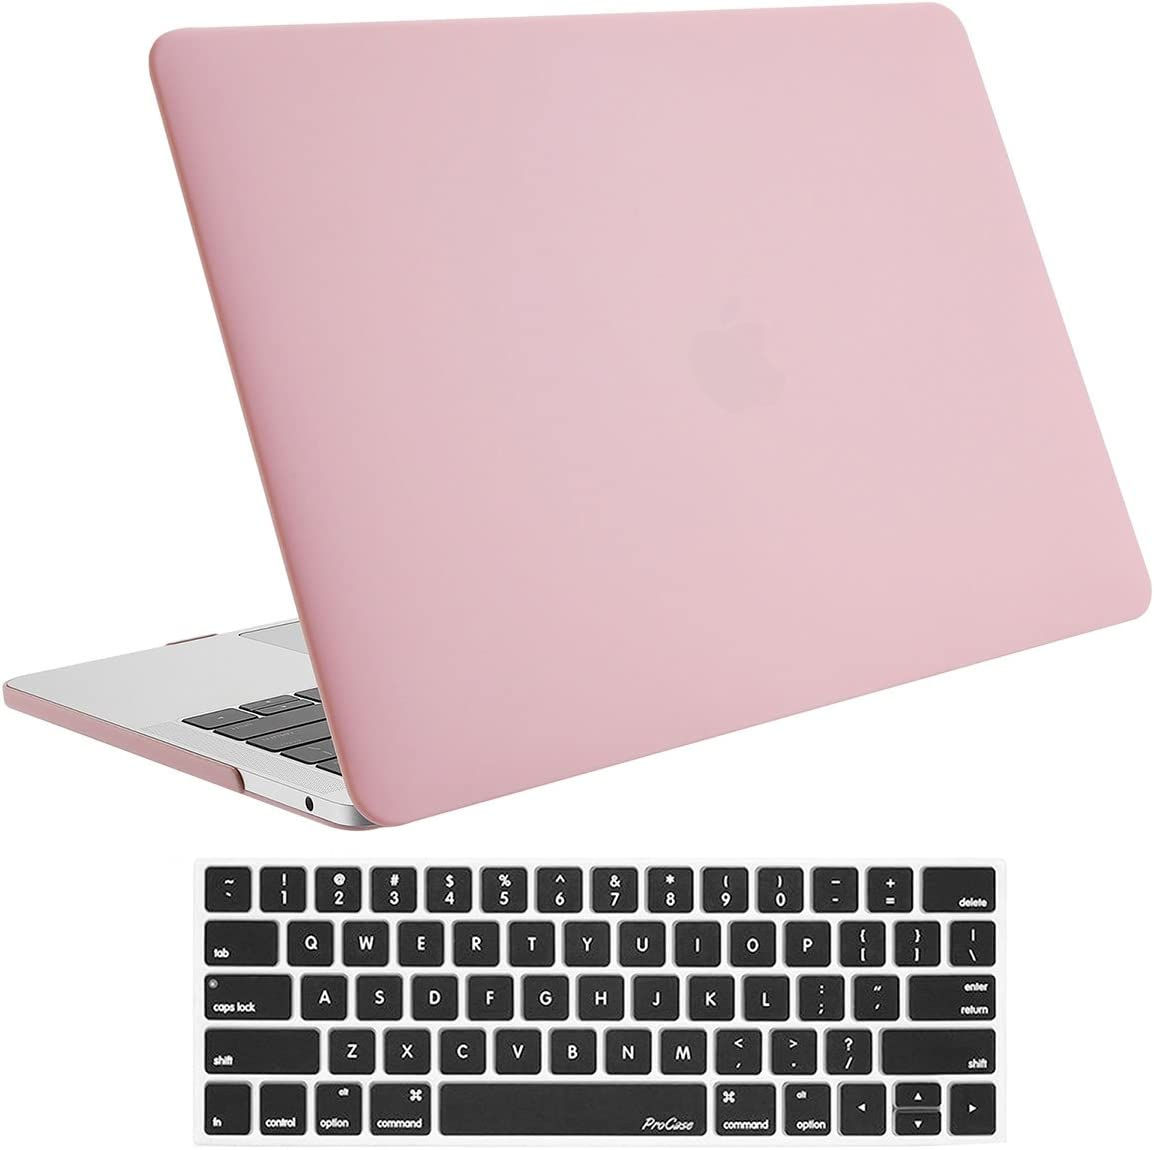 ProCase MacBook Pro 13 Case 2019 2018 2017 2016 Release A2159 A1989 A1706 A1708, Hard Case Shell Cover and Keyboard Skin Cover for MacBook Pro 13 Inch with/Without Touch Bar –Pink